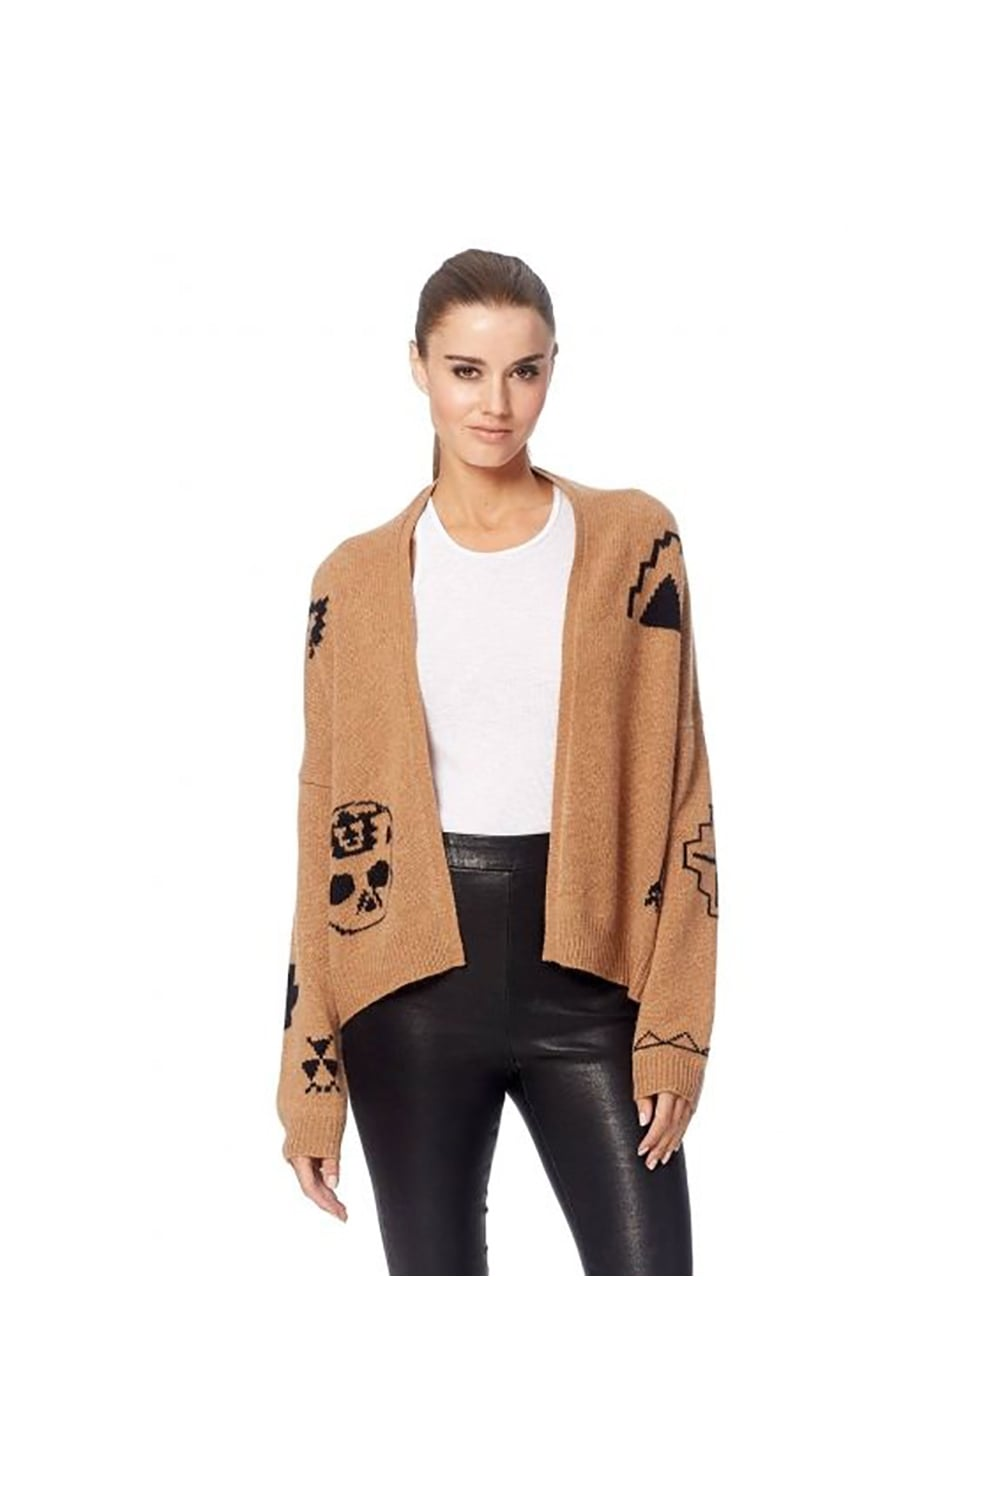 360 Cashmere Cleo Camel Skull Cardigan 94104 - WOMAN from Piajeh UK